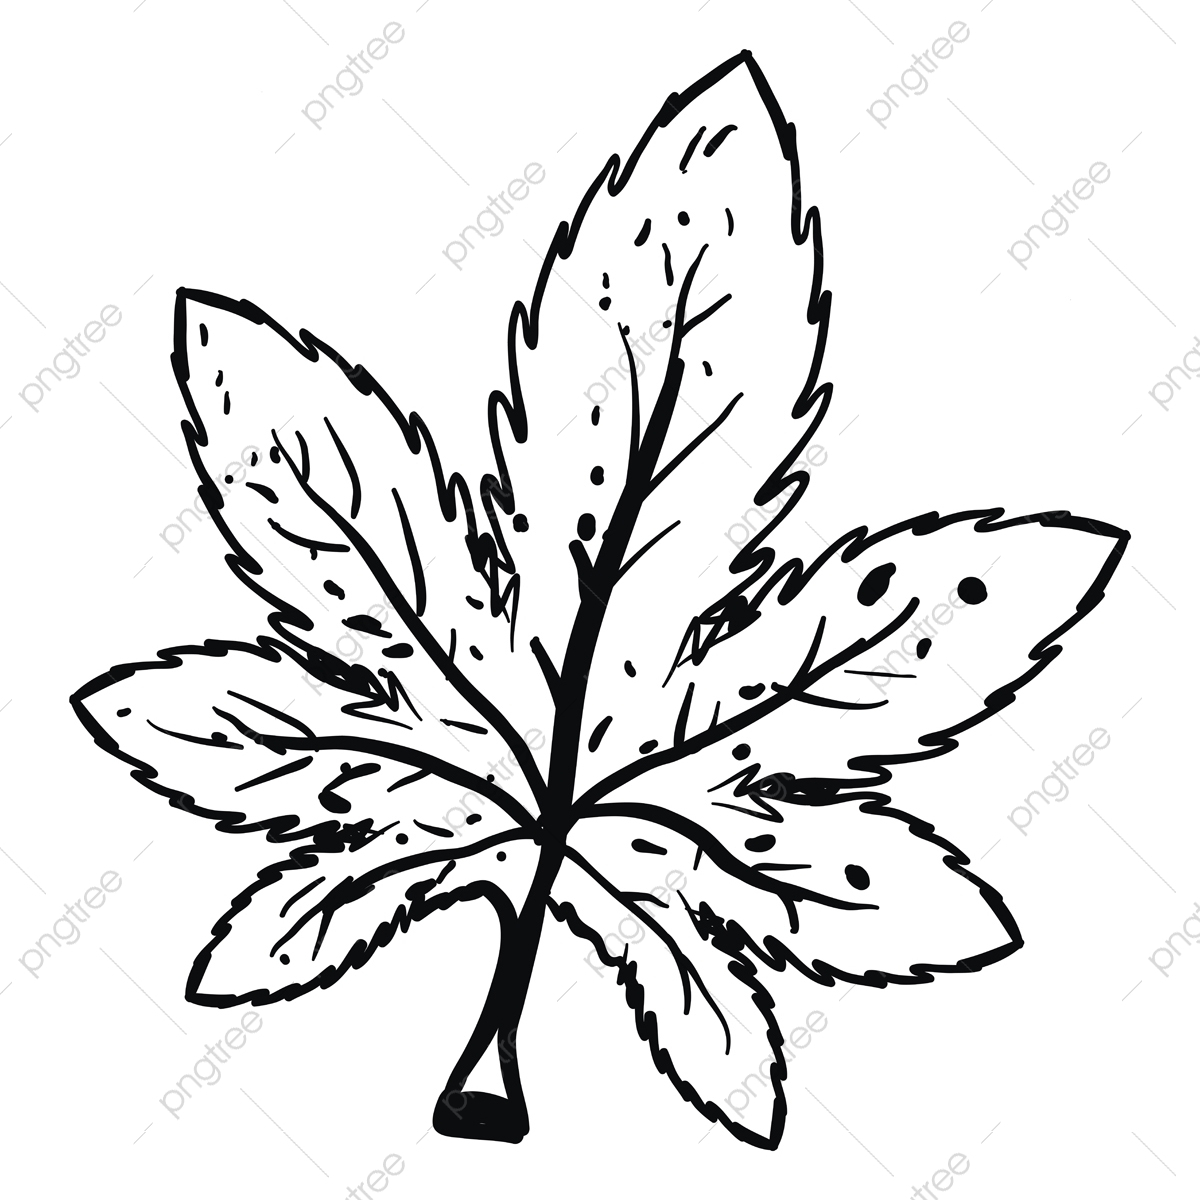 drawing of marijuana illustration vector on white background cannabis natural leaf png and vector with transparent background for free download https pngtree com freepng drawing of marijuana illustration vector on white background 5290715 html